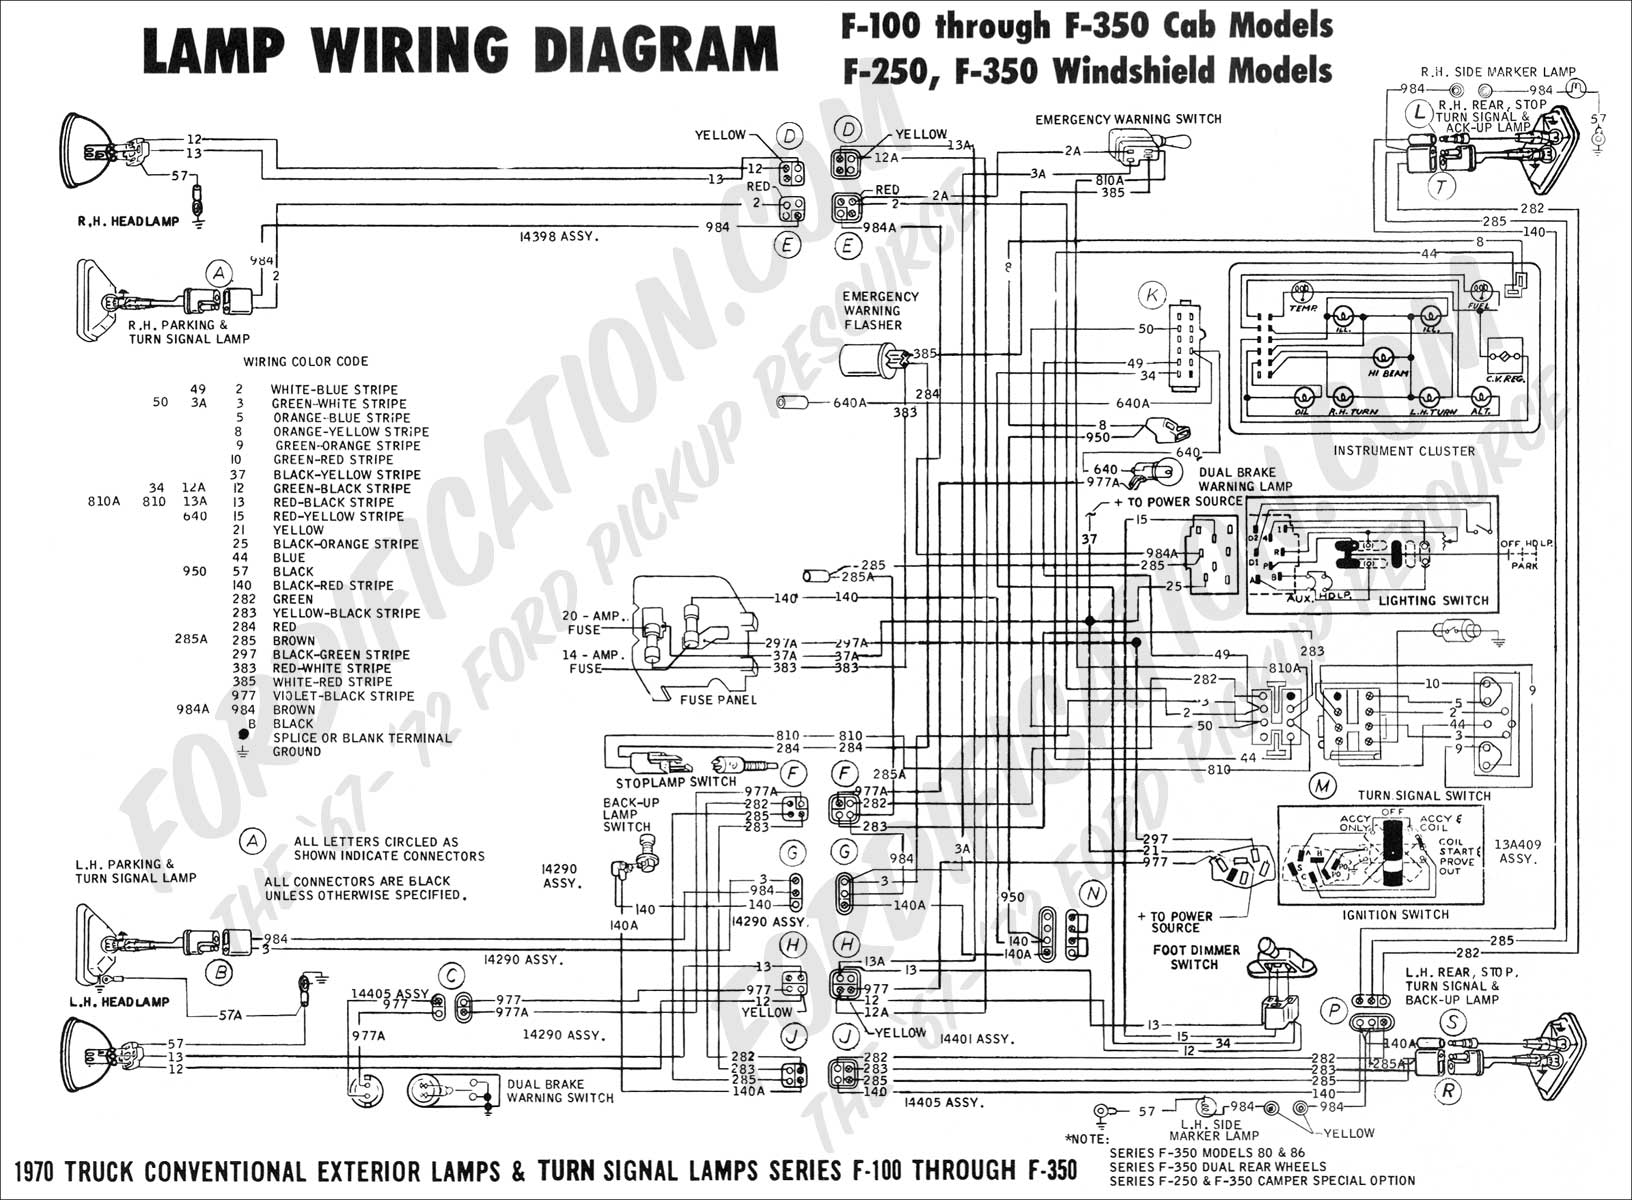 94 f150 wiring diagram 94 wiring diagrams 2000 f150 wiring diagram 2000 wiring diagrams